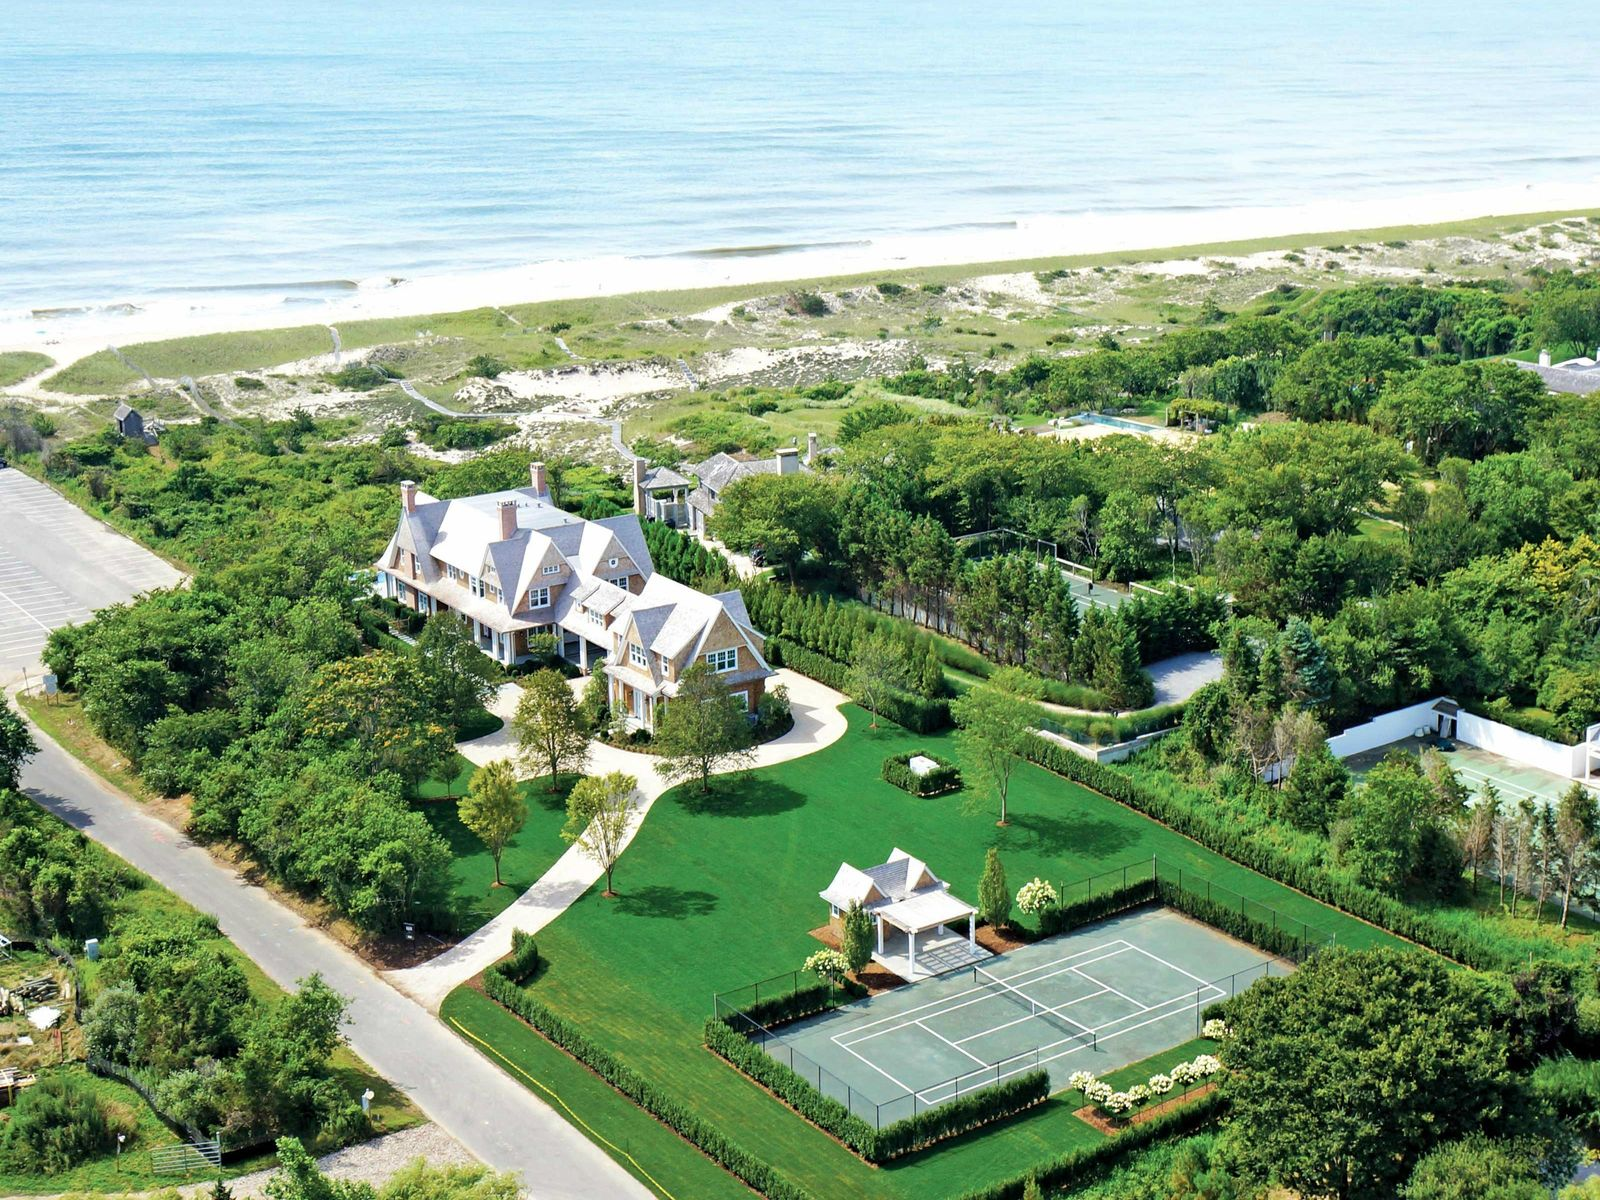 East Hampton Oceanfront, Pool and Tennis, East Hampton NY Single Family Home - Hamptons Real Estate